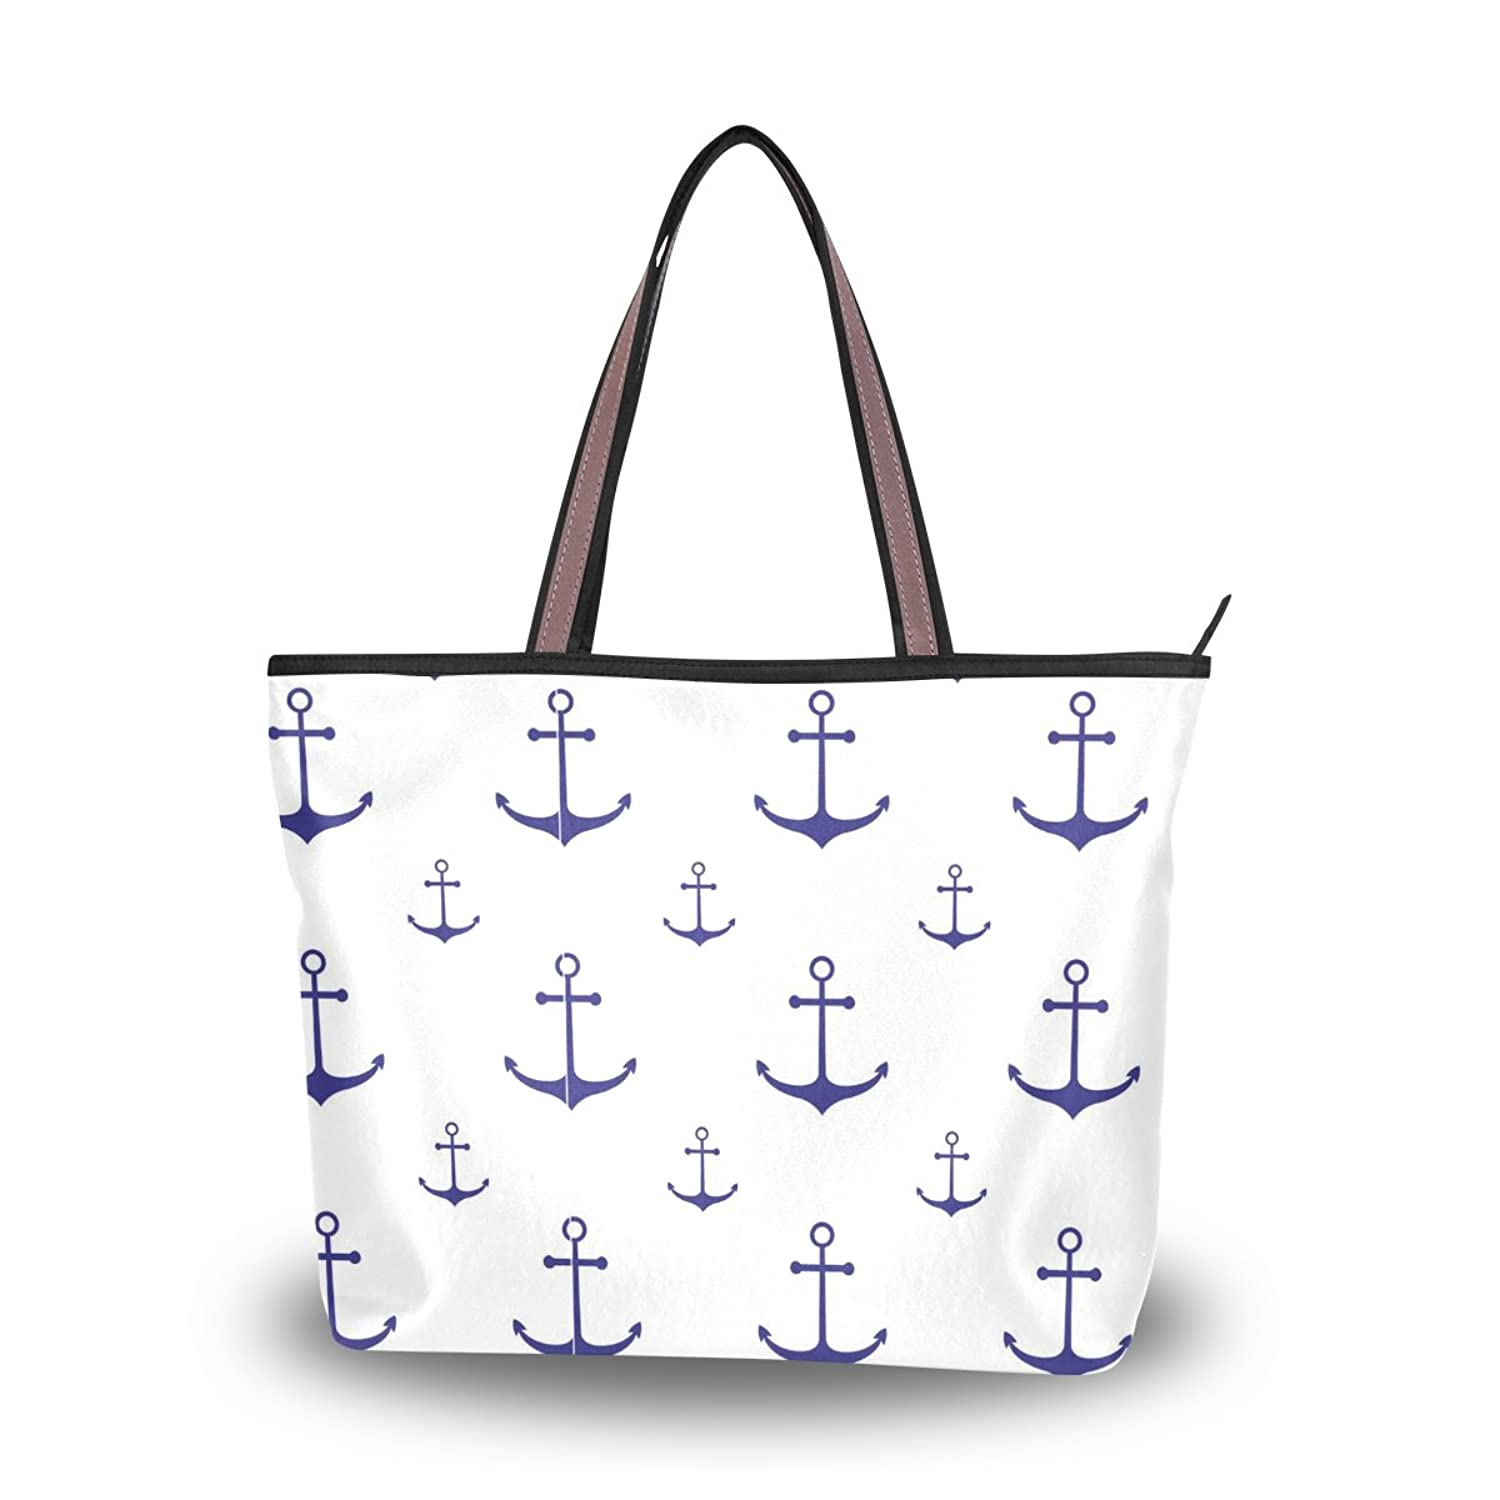 Senya Women's Handbag Microfiber Large Tote Shoulder Bag, Sea Symbols